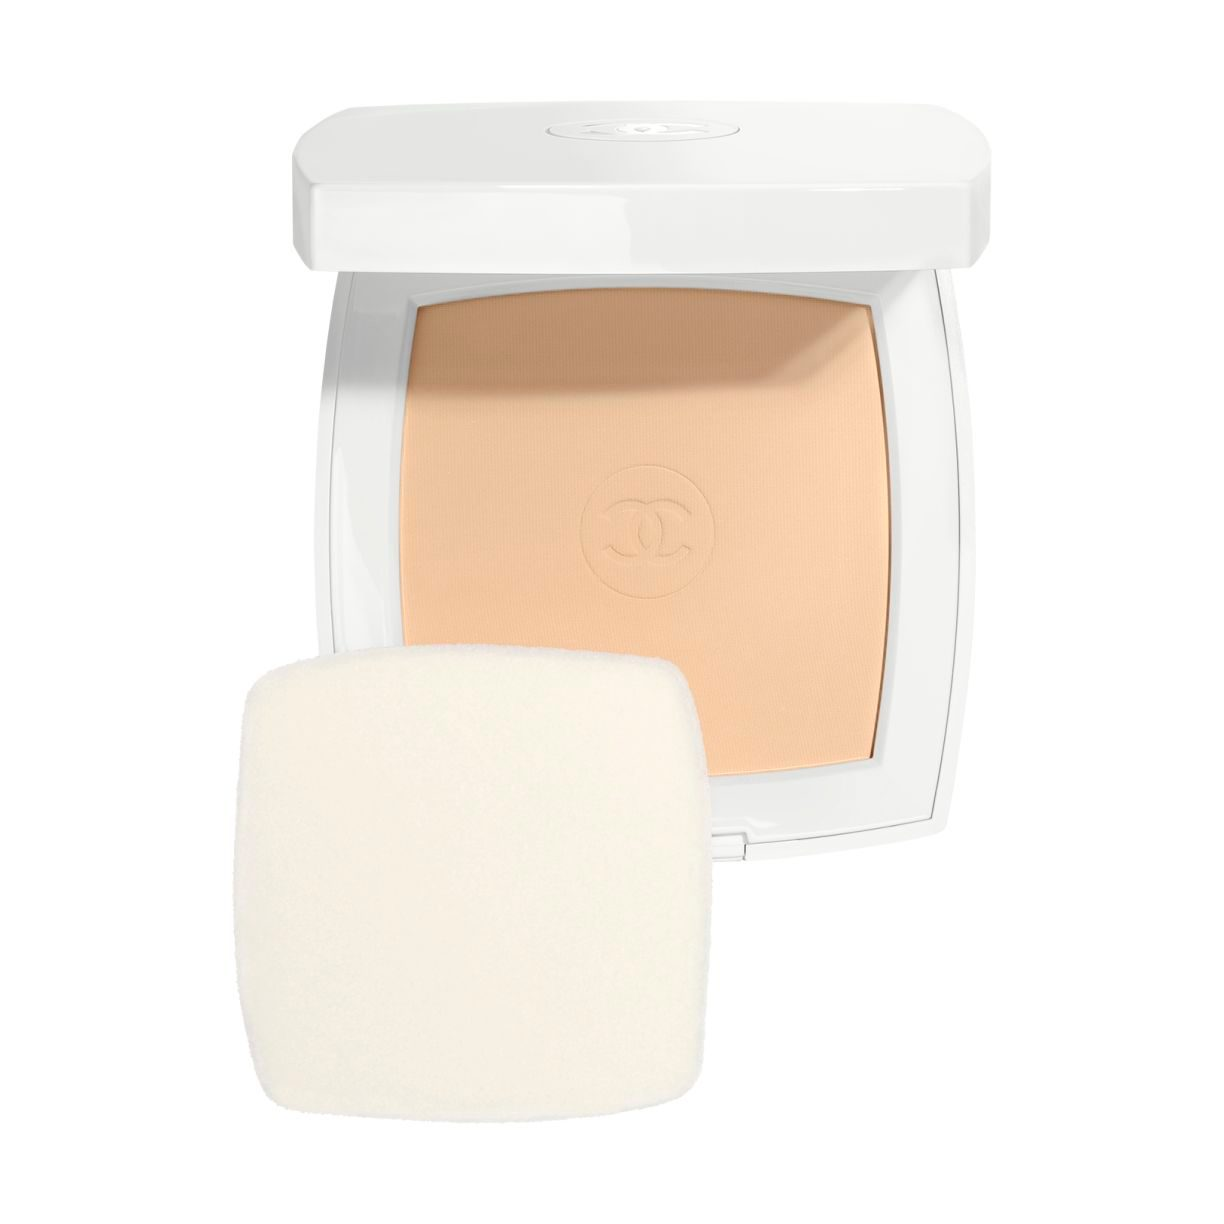 LE BLANC BRIGHTENING COMPACT FOUNDATION LONG LASTING RADIANCE-THERMAL COMFORT  10 - BEIGE